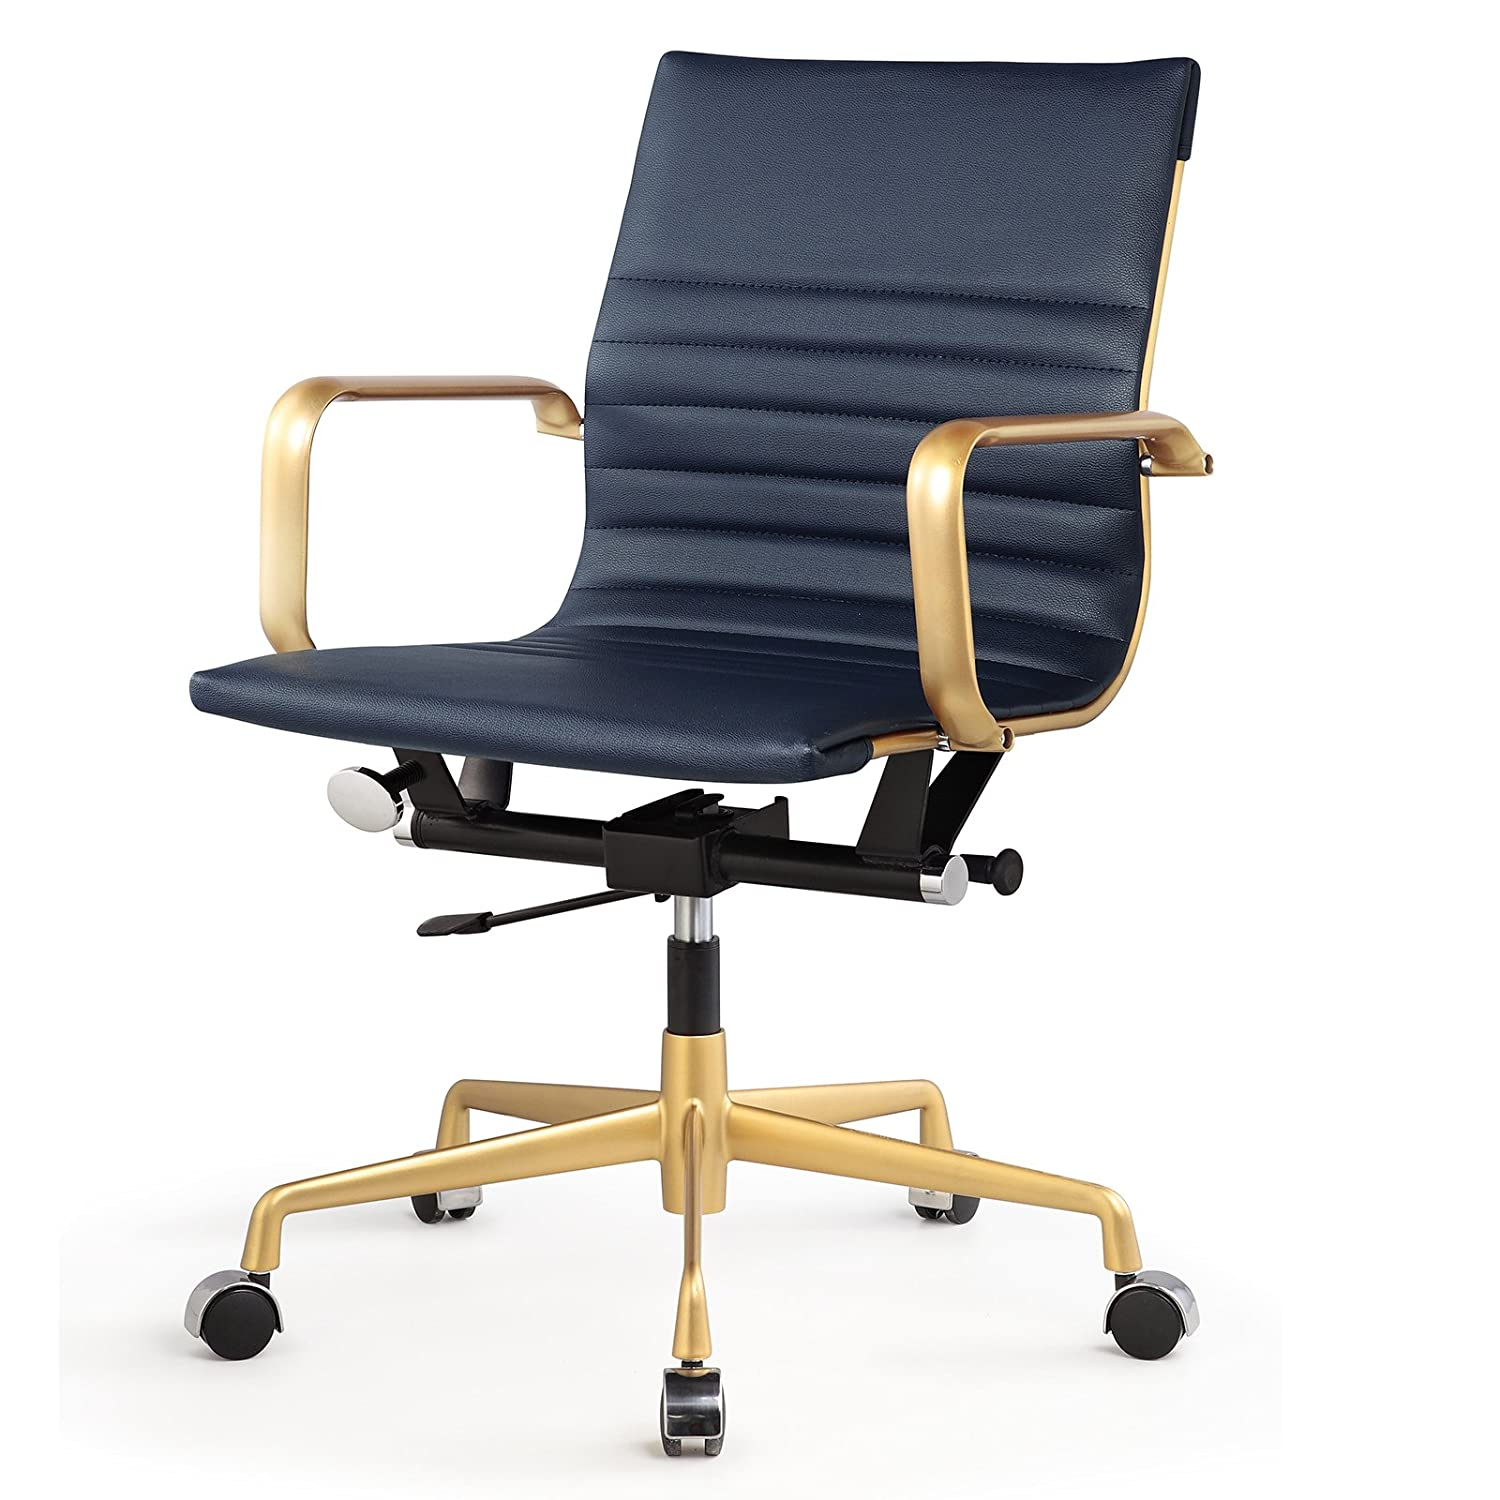 Amazon.com: Meelano 348 GD NVY Office Chair In Vegan Leather, Gold/Navy  Blue: Kitchen U0026 Dining